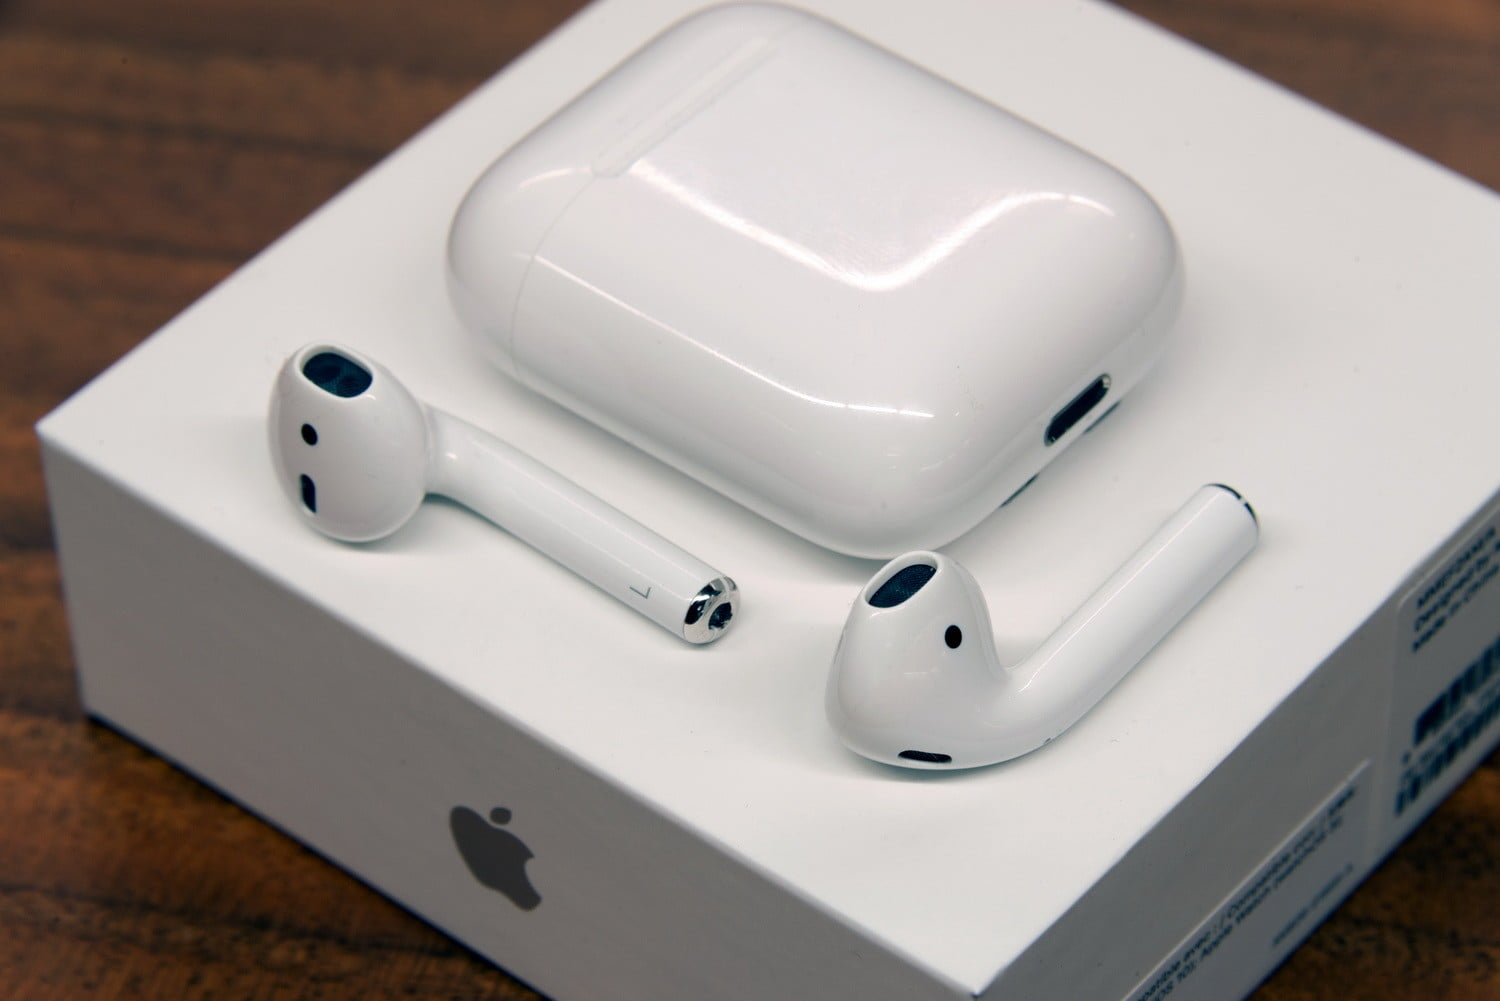 apple-airpods-with-packing-box-configure-now